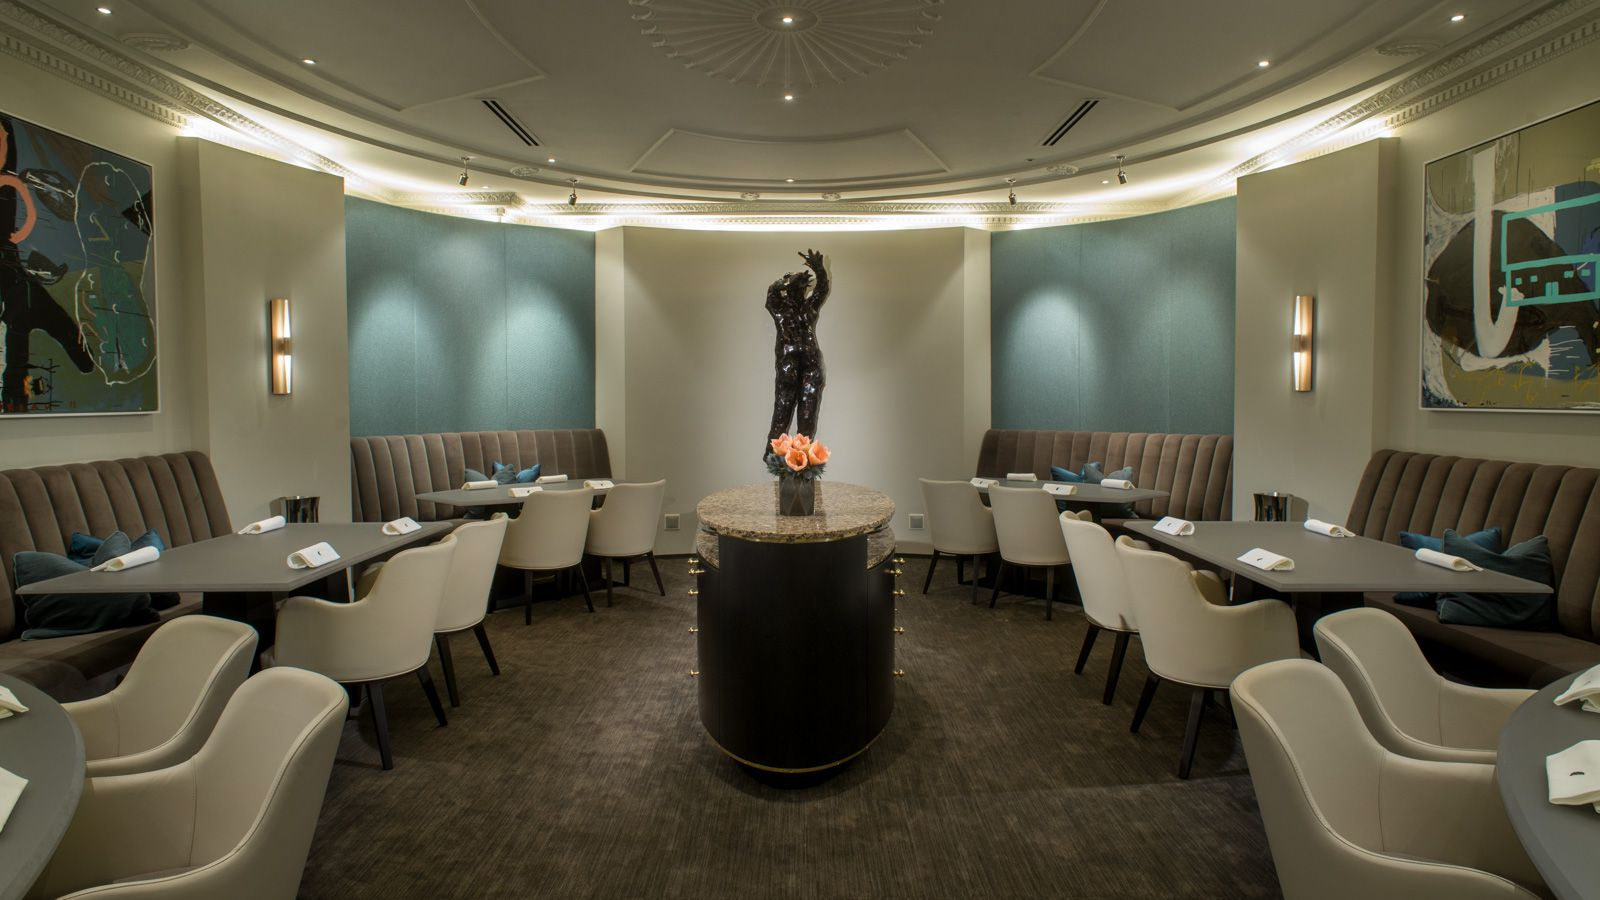 Inside Alinea 2.0: Look Around the Renovation and Details